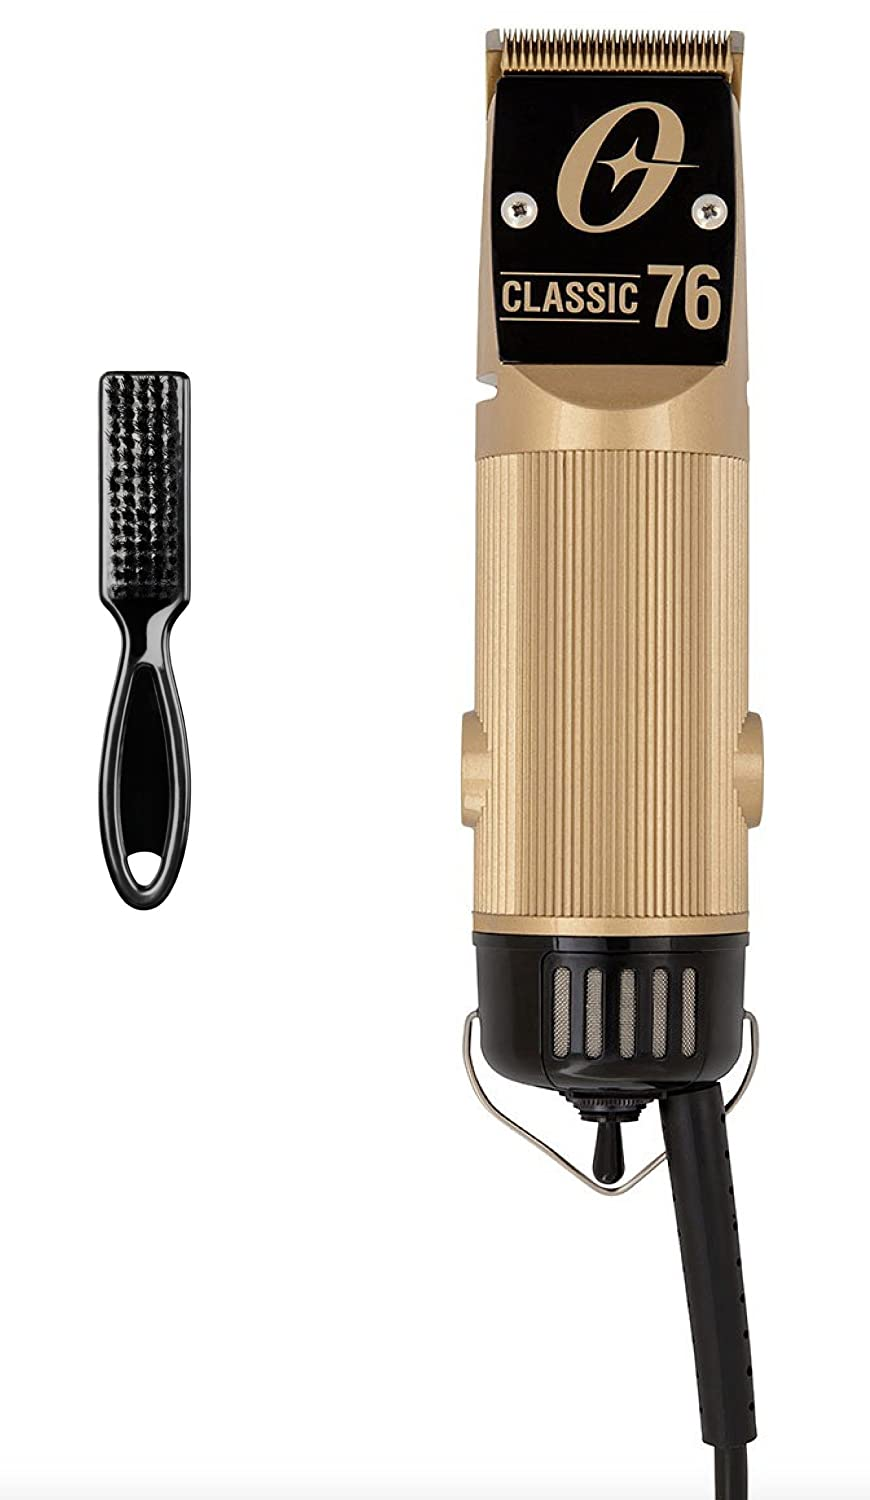 Oster Professional Limited Edition 2-Speed Gold Classic 76 Clipper with gold plated #000 blade, Blade Brush